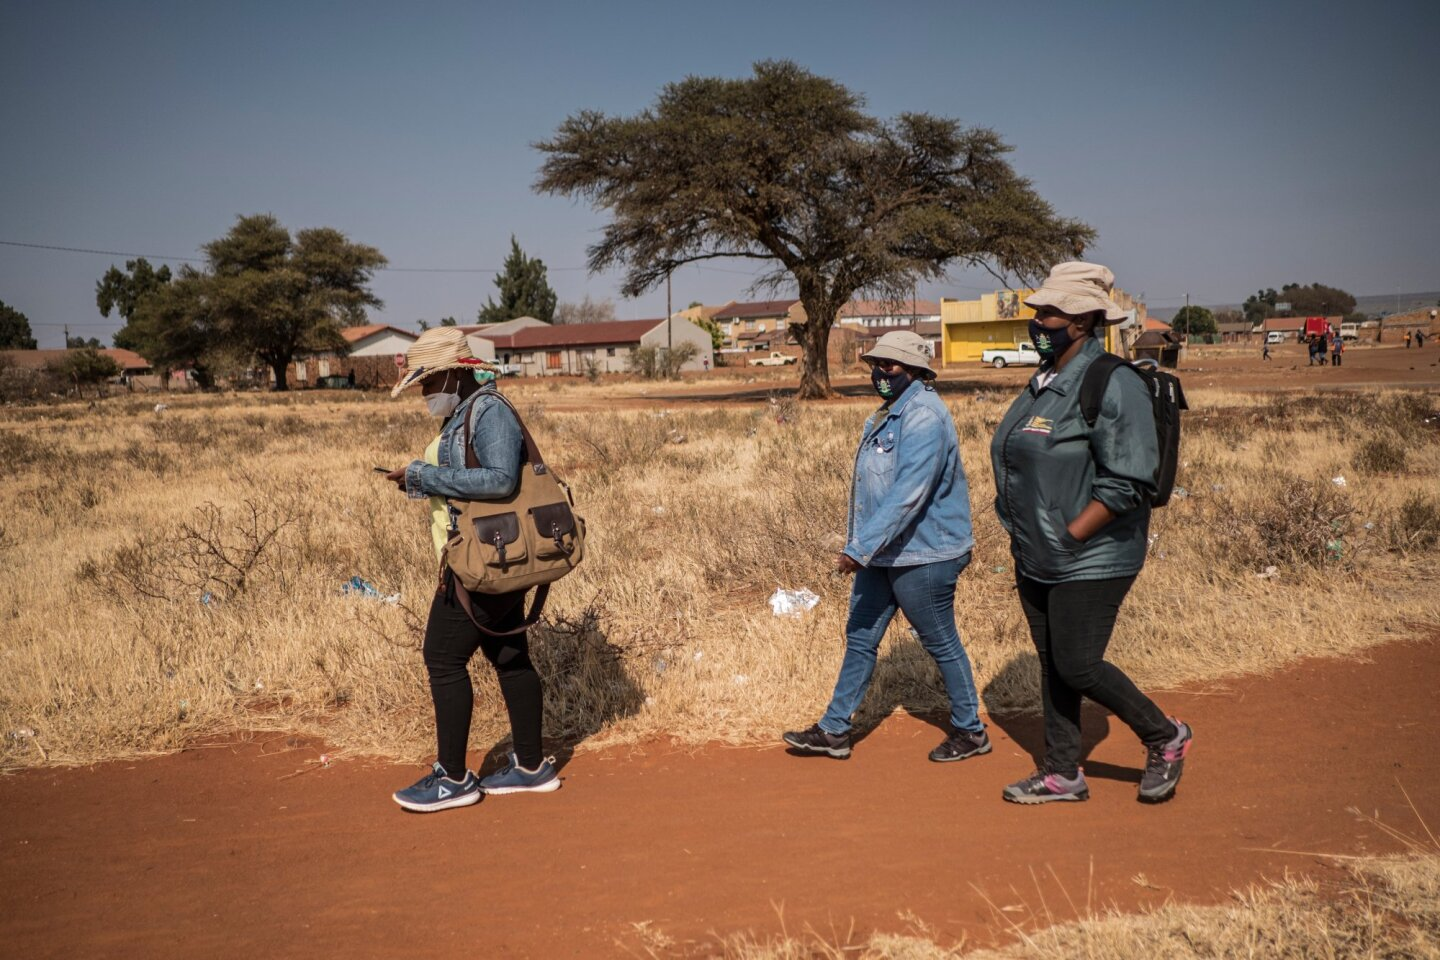 Community Healthcare Workers, Thatayaona Gaebetse (35), Emily Mkenku (55) and Kereng Motlhale (44) walk to homes to do tracing in the community close to the Pudumong Healthcare Centre in the North West Province, South Africa, on Sept. 4, 2020. | TRF